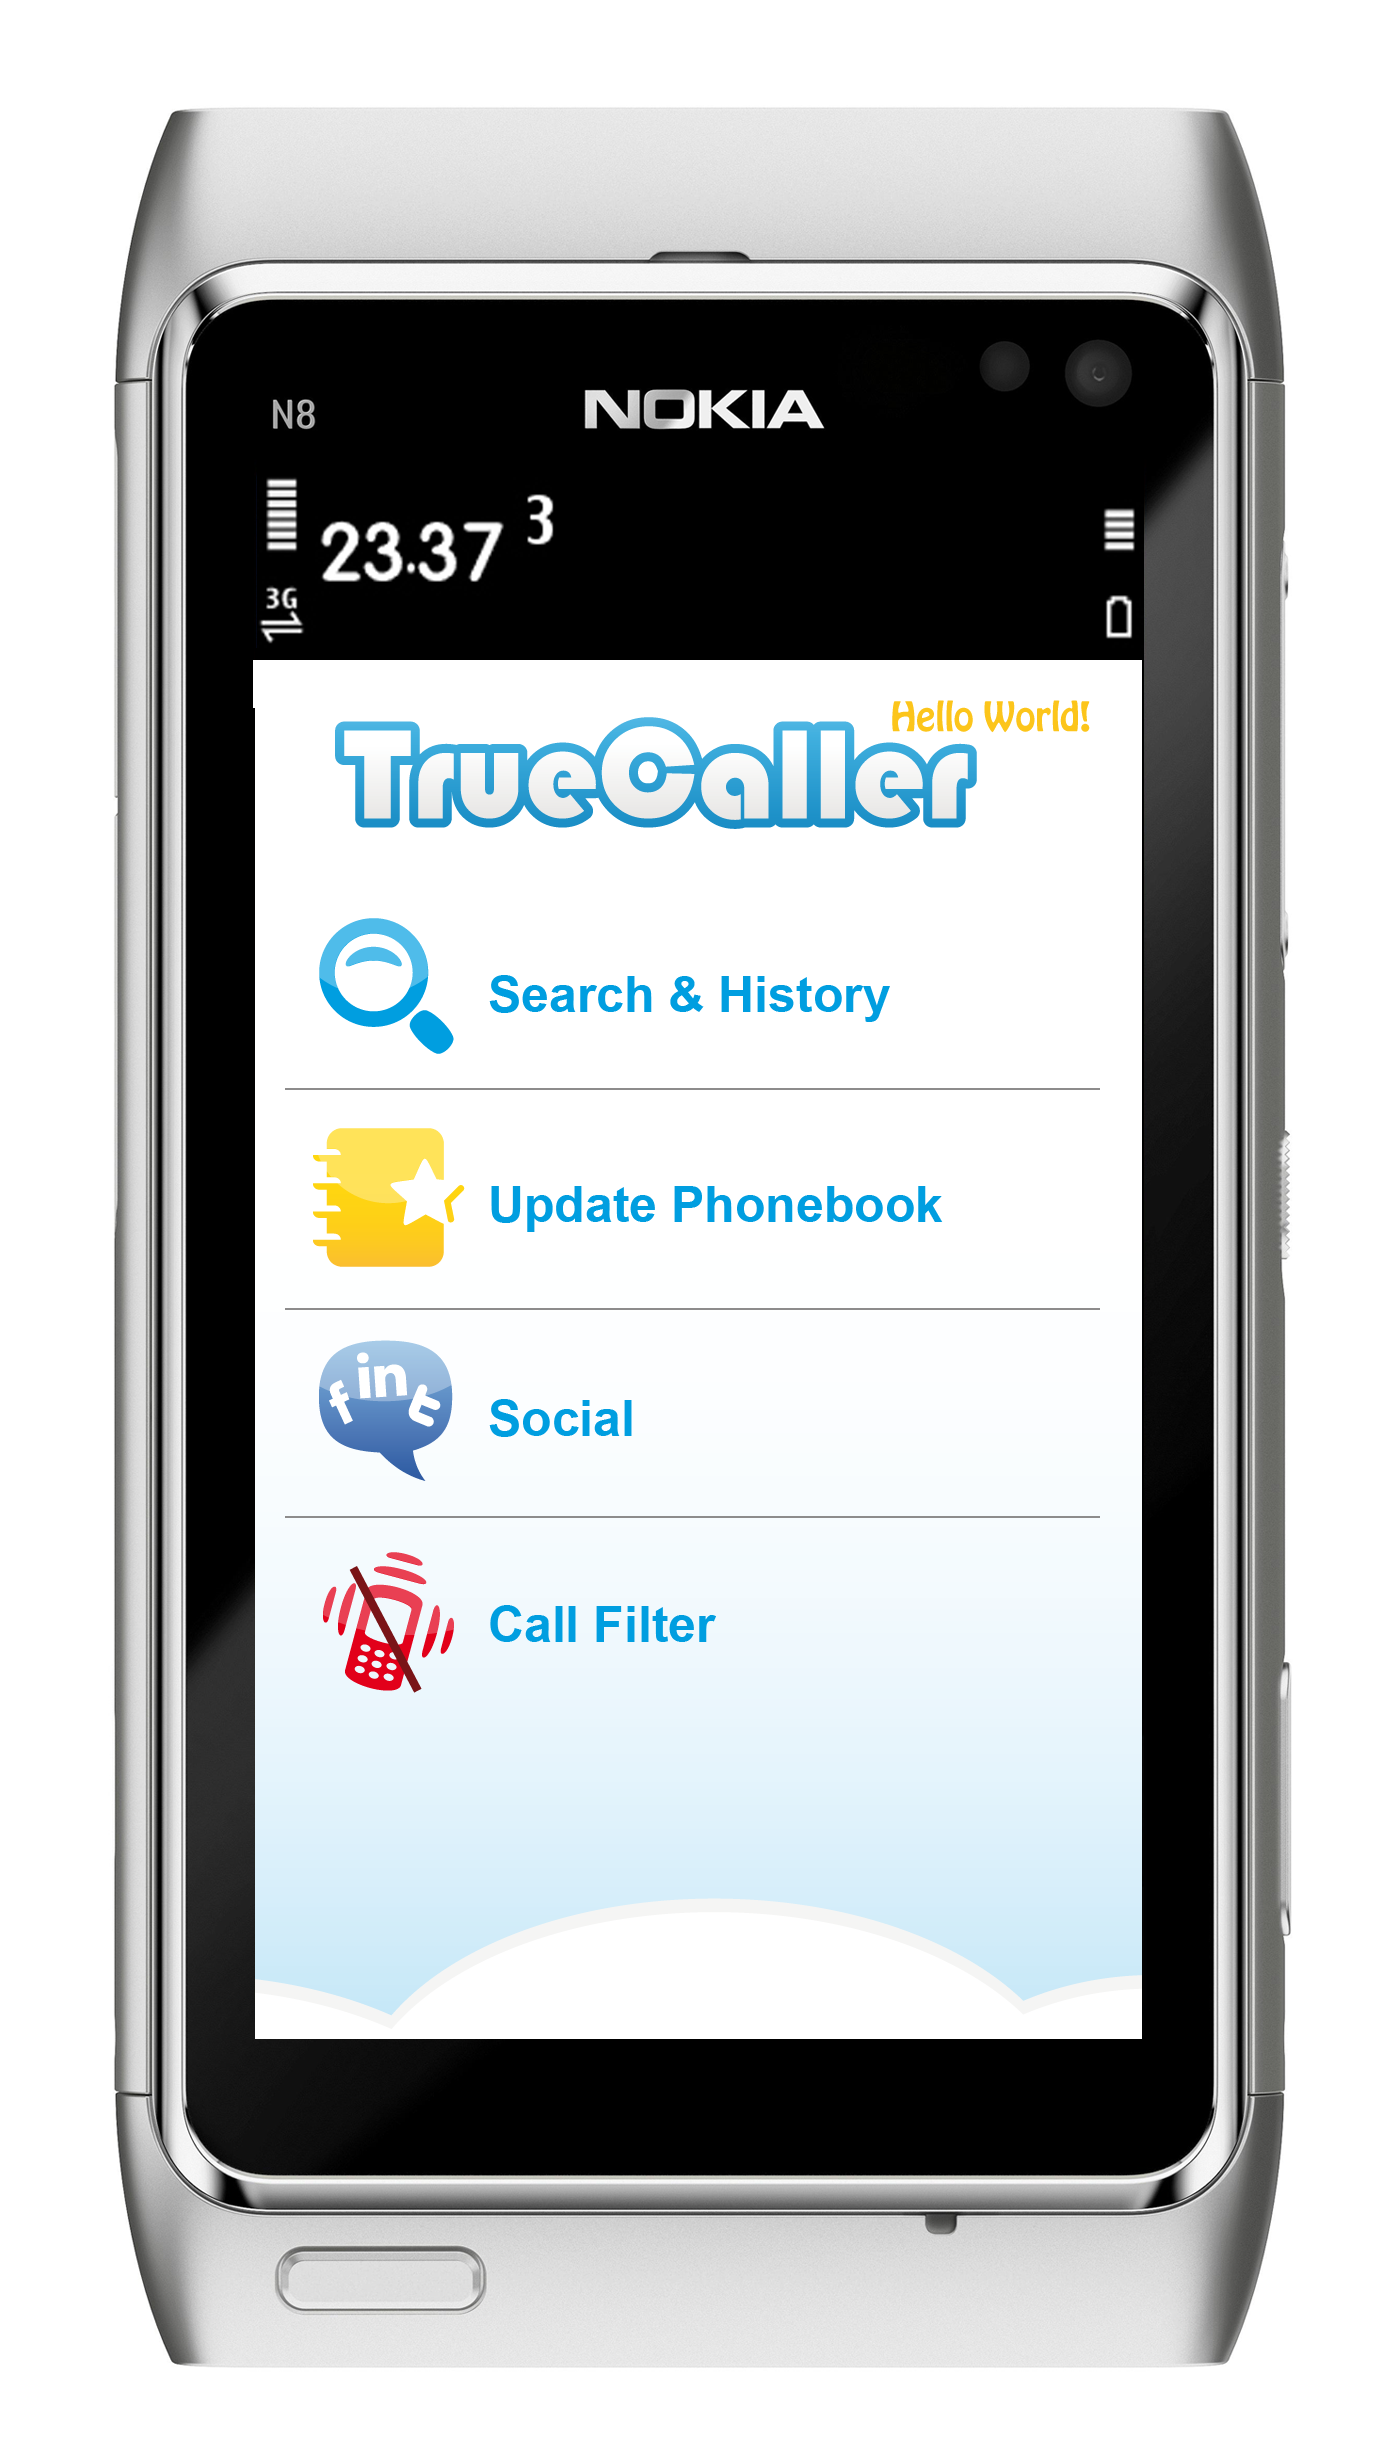 TrueCaller for Symbian Updated to 2 10, Gets Better Support